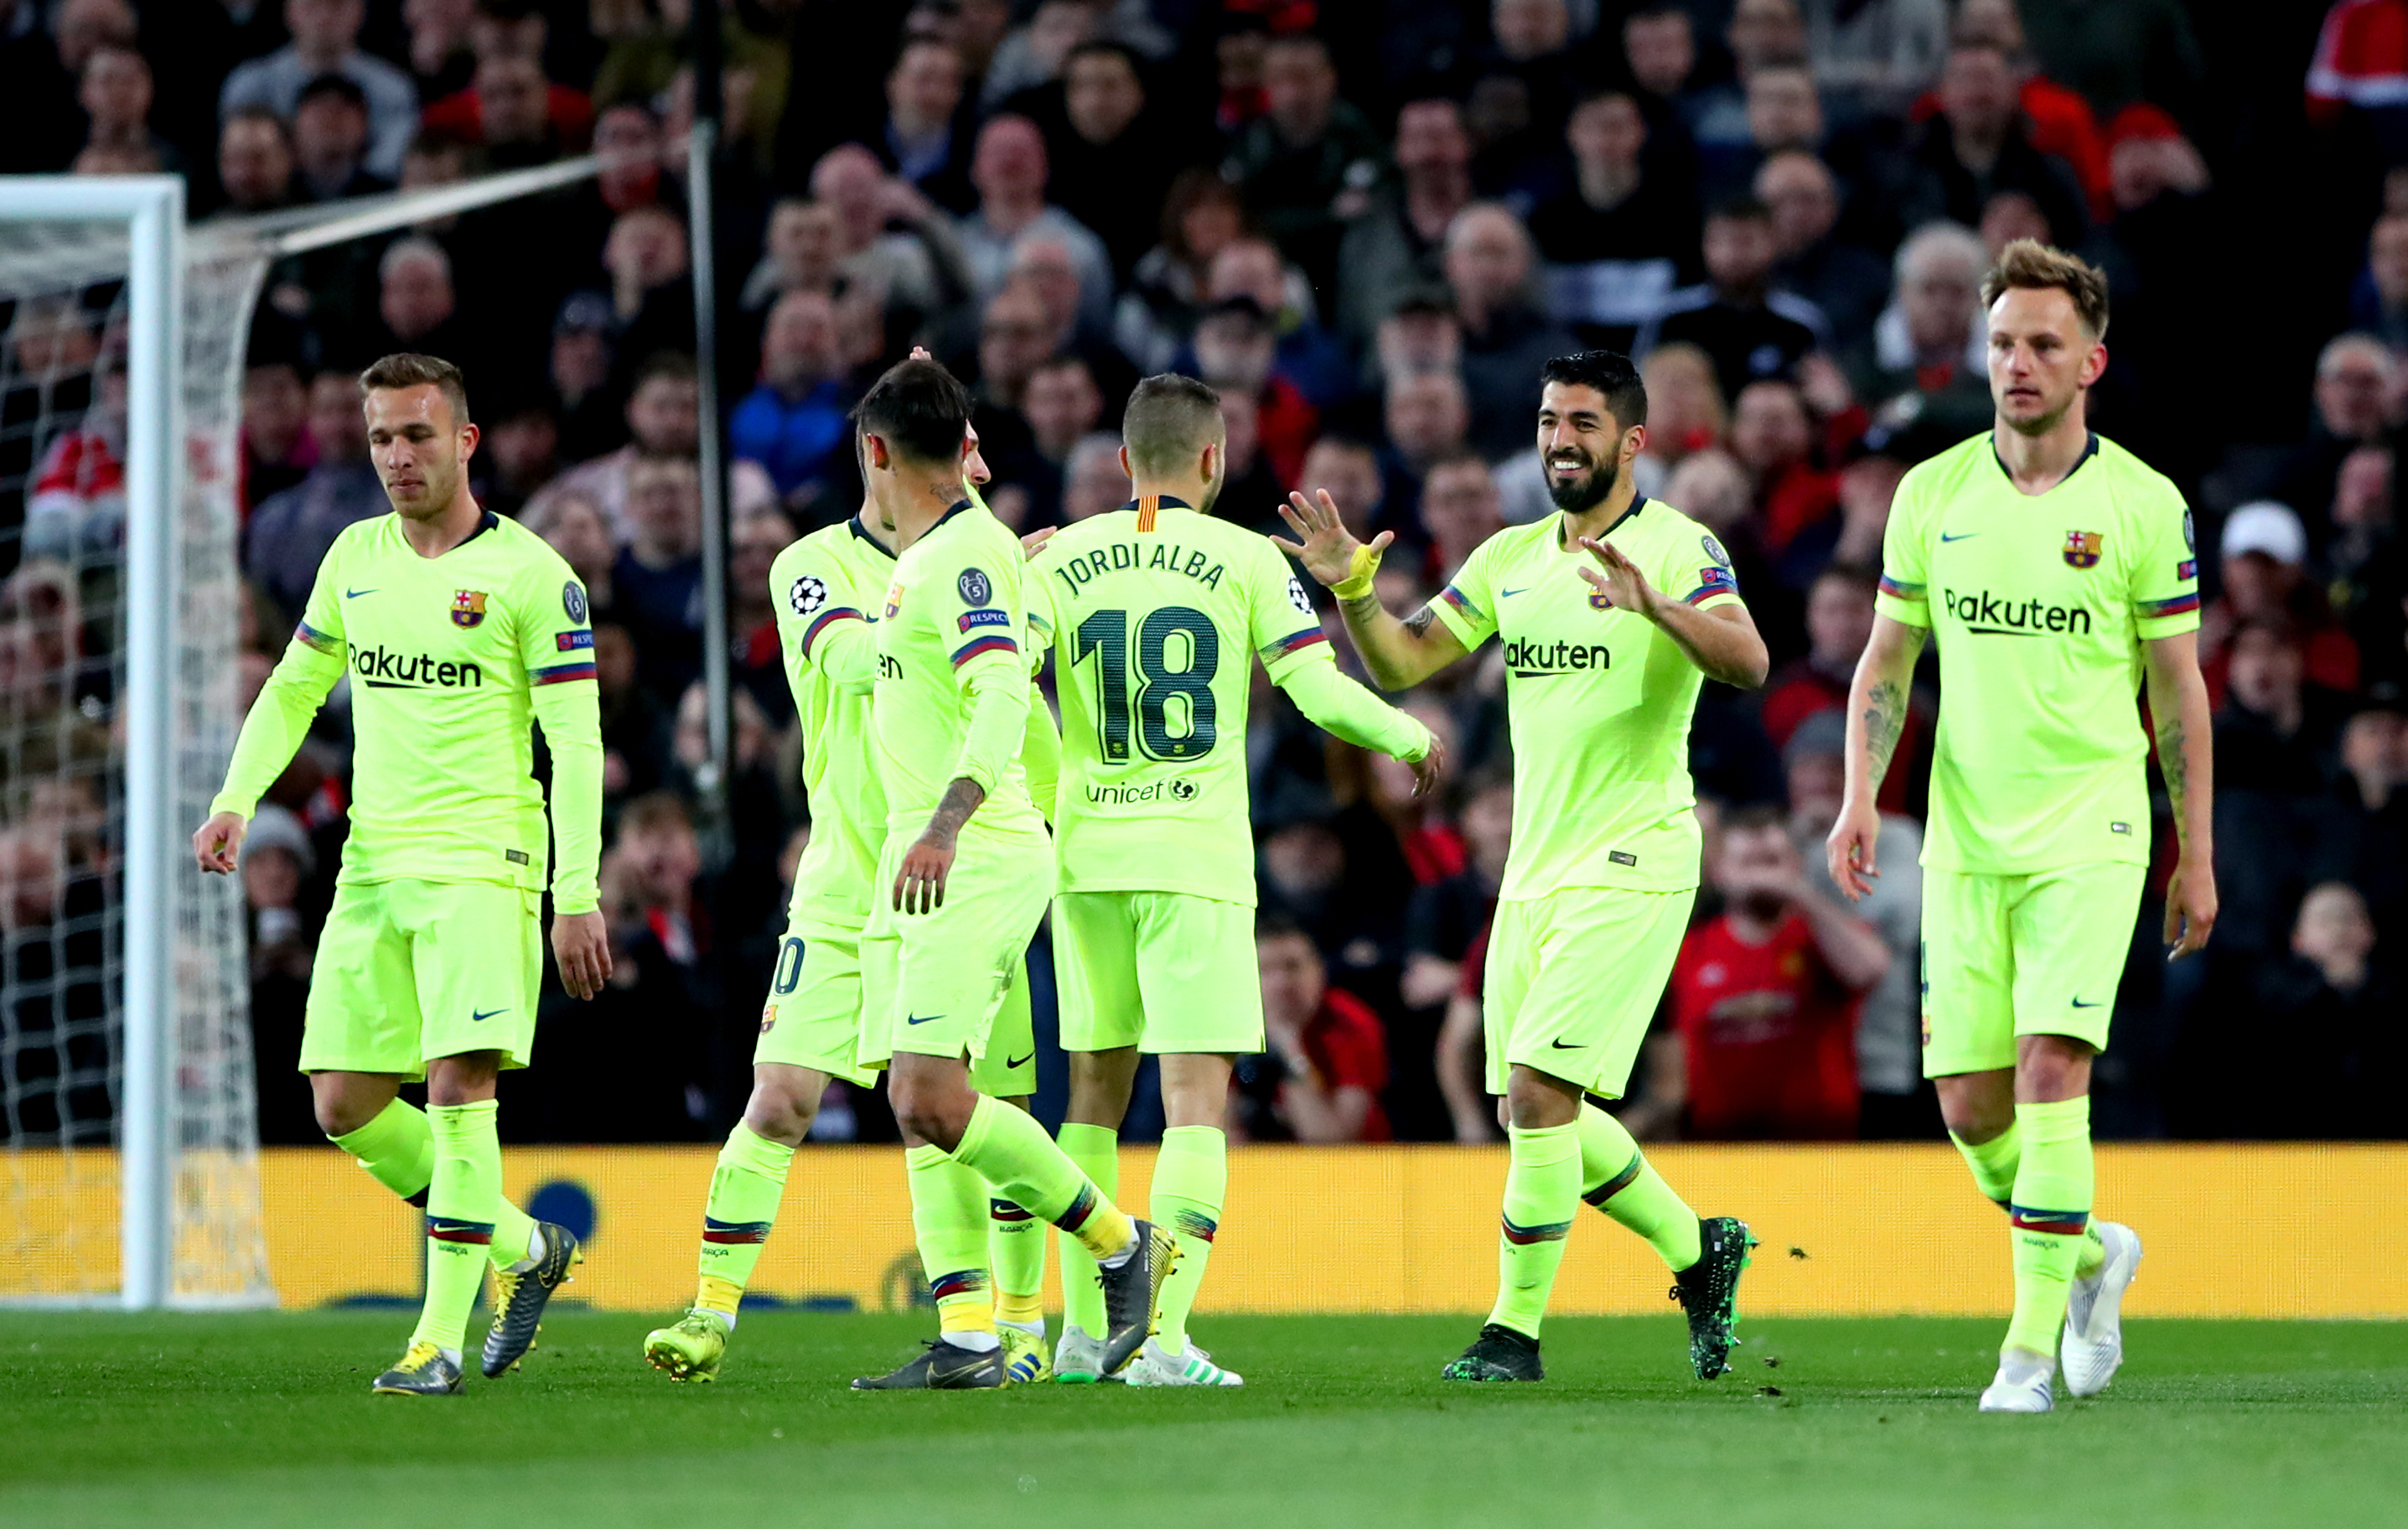 Barcelona had a win to celebrate at Old Trafford